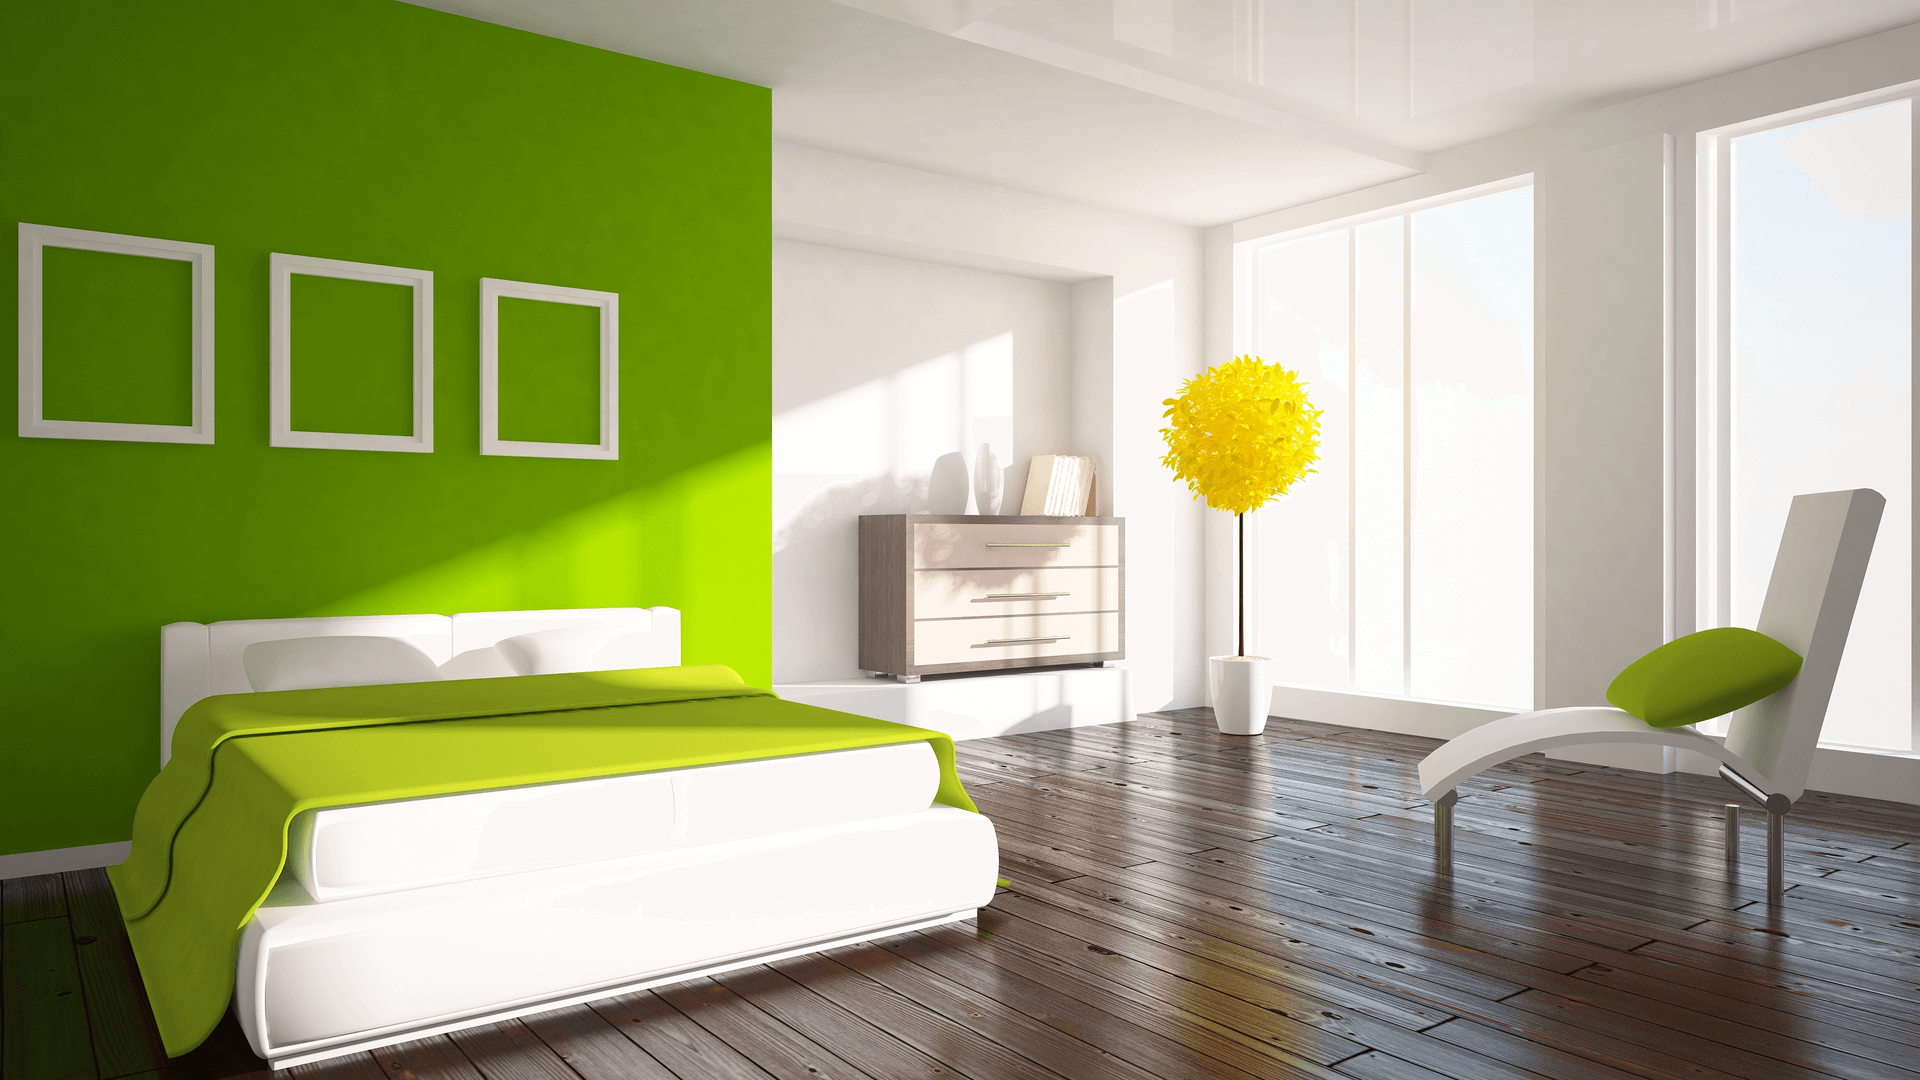 6 Awesome Green Bedroom Ideas